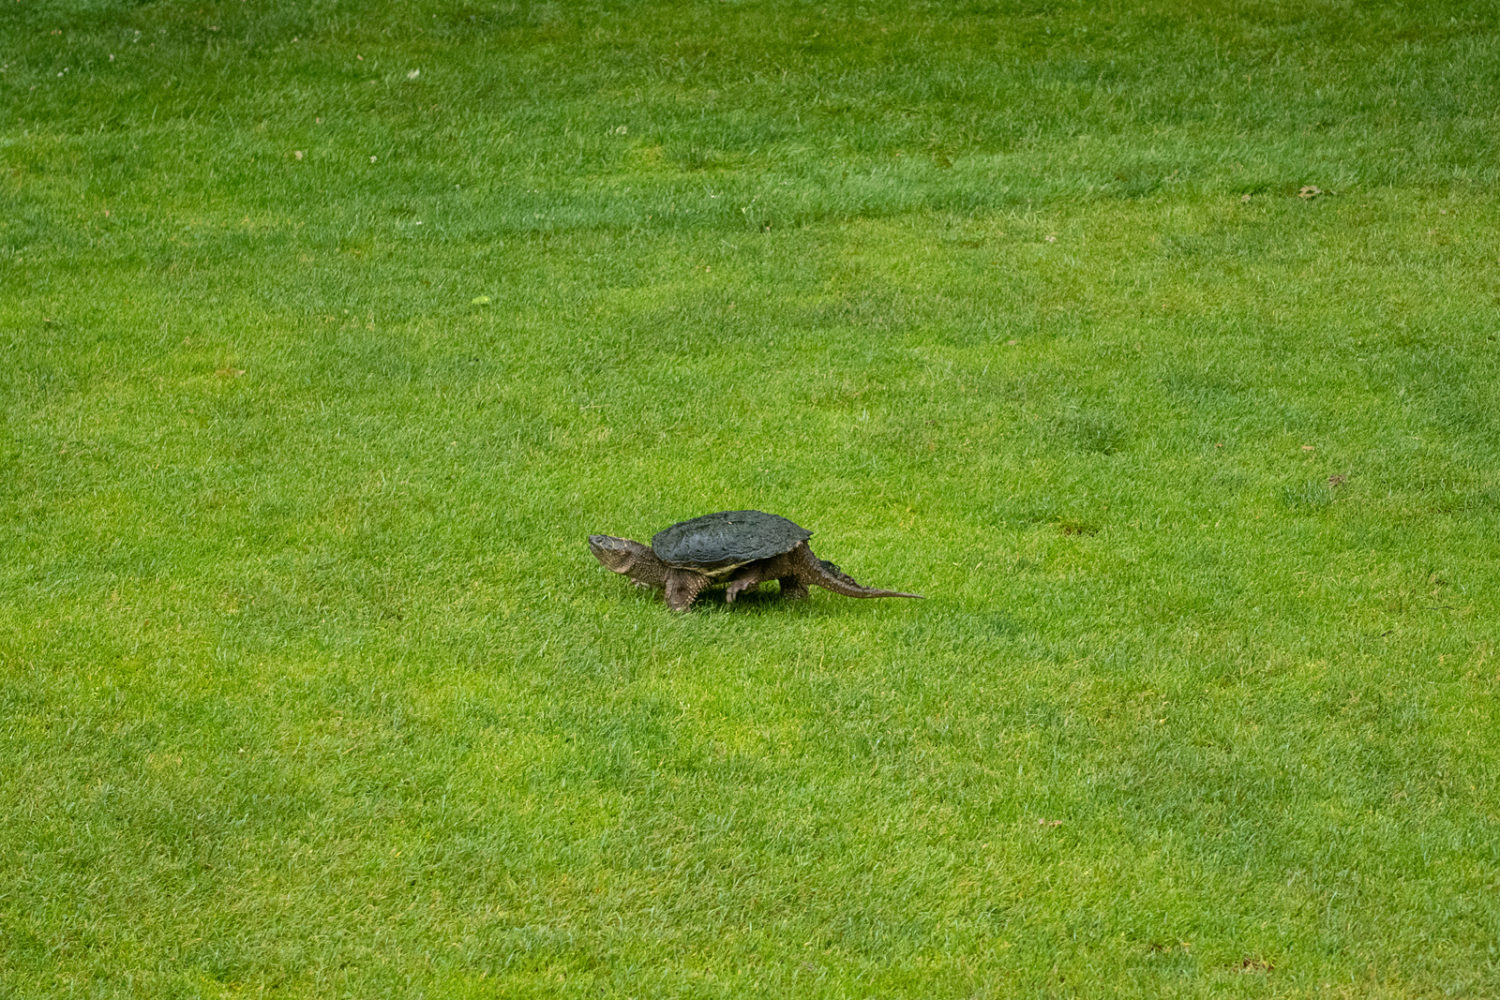 Mama turtle on the golf course